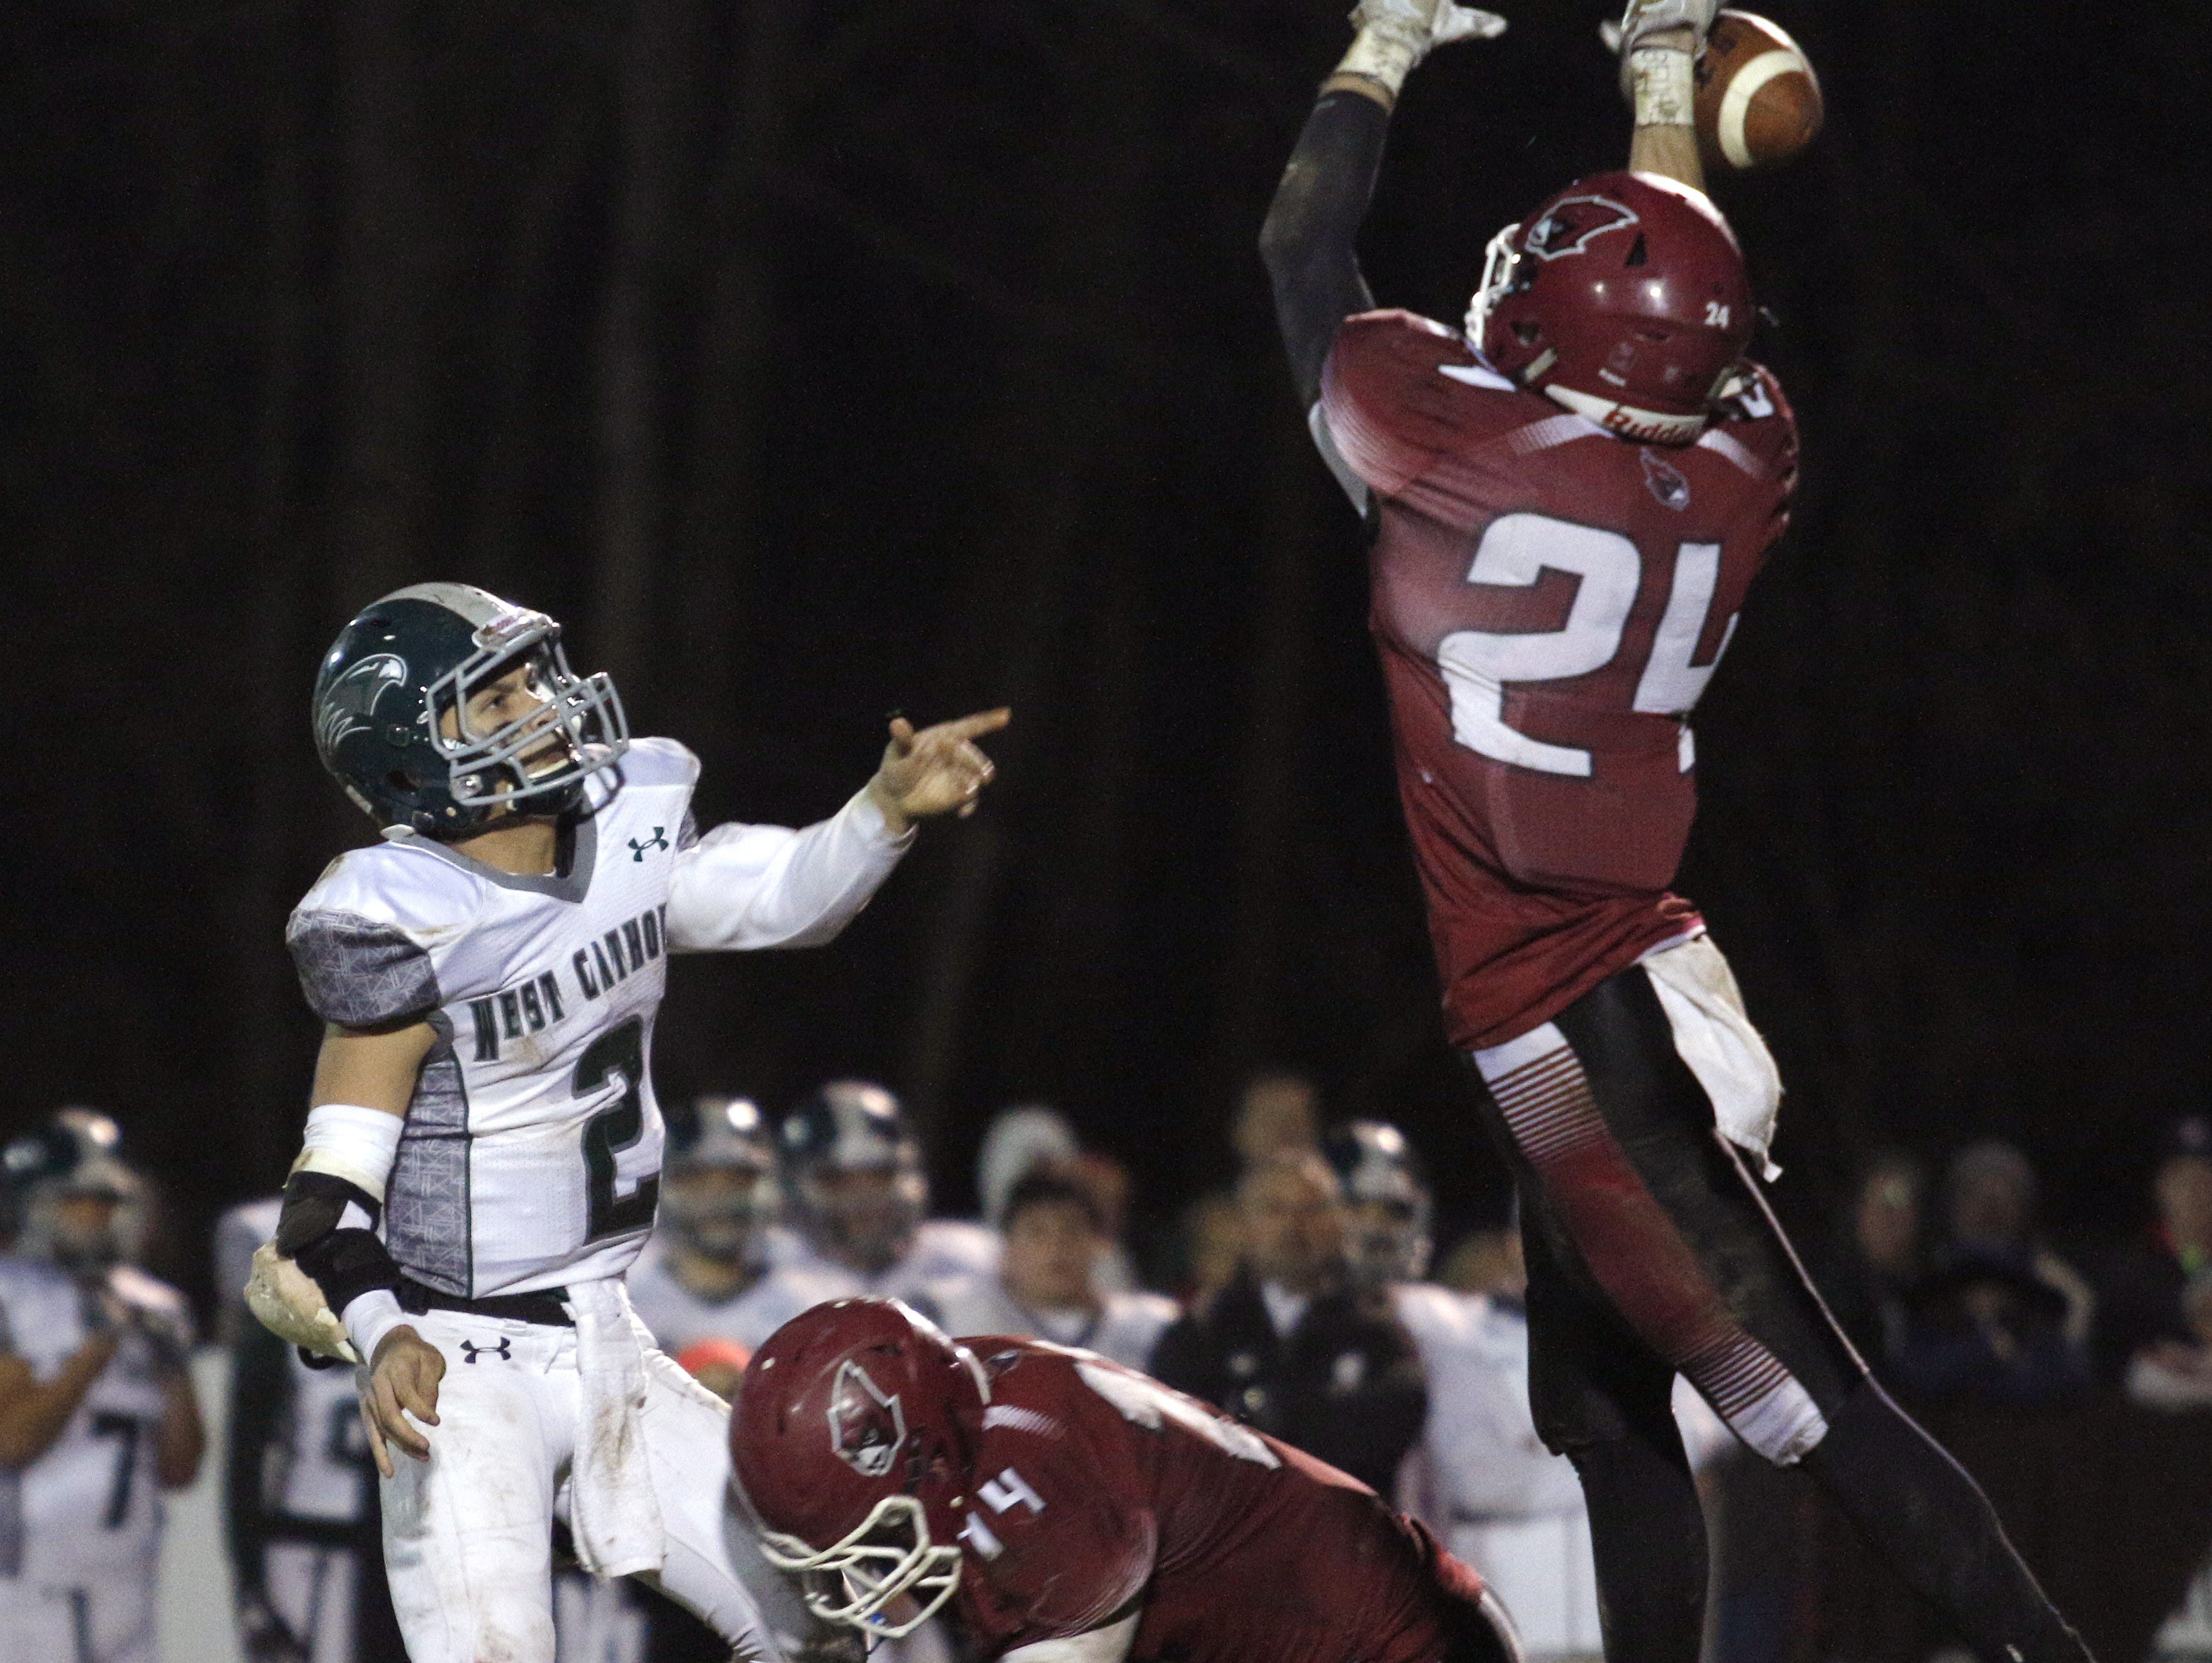 Portland's Treyvin Groesser, right, bats down a Grand Rapids West Catholic pass by Gaetano Vallone, during a playoff game earlier this month. Groesser is an Associated Press Division 5-6 all-state selection,